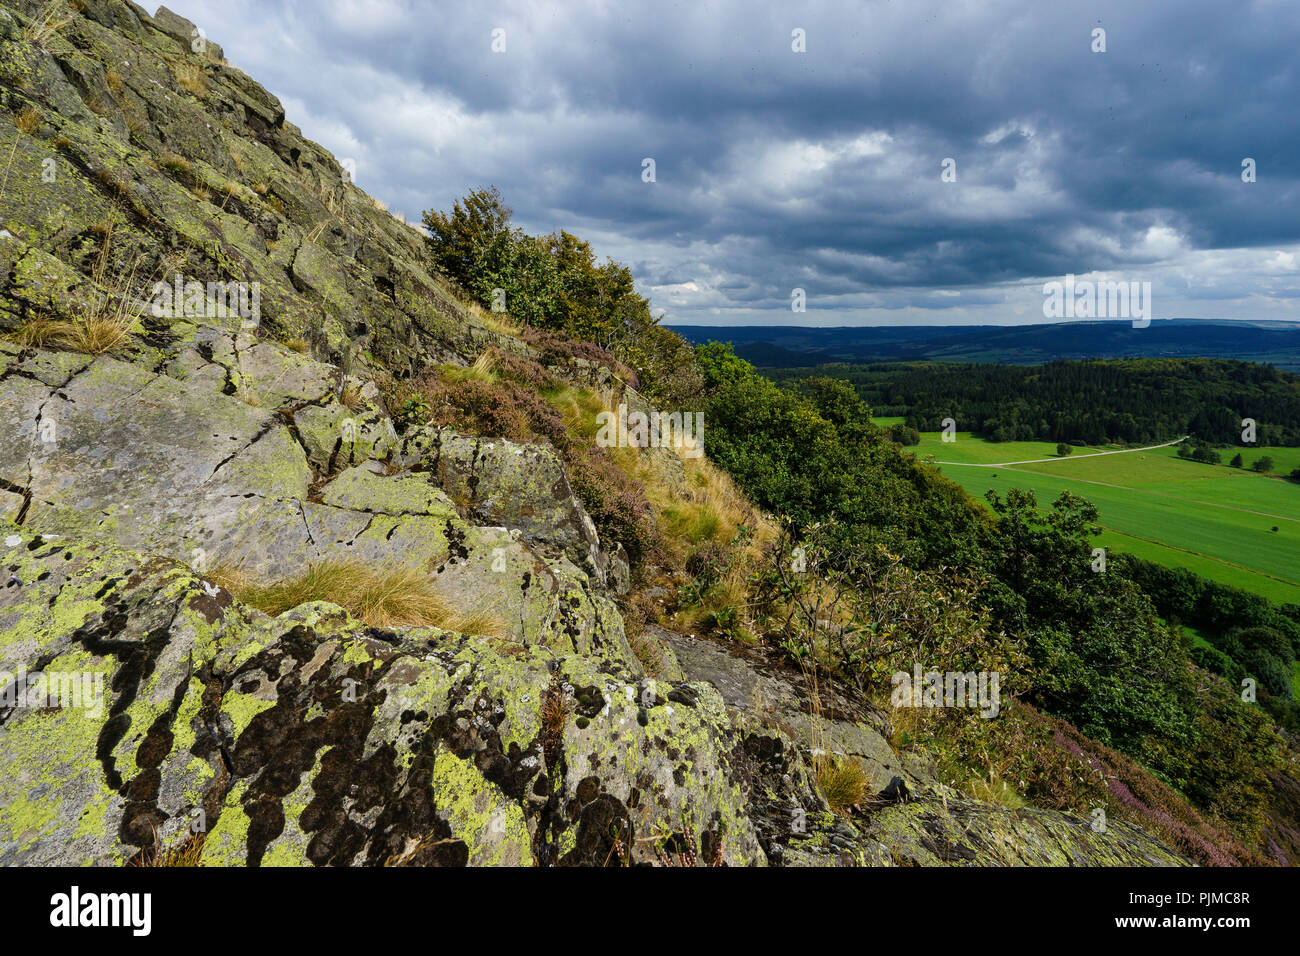 The Milseburg with its large stone run, the holy mountain in the biosphere reserve Rhön, Hesse, Germany - Stock Image